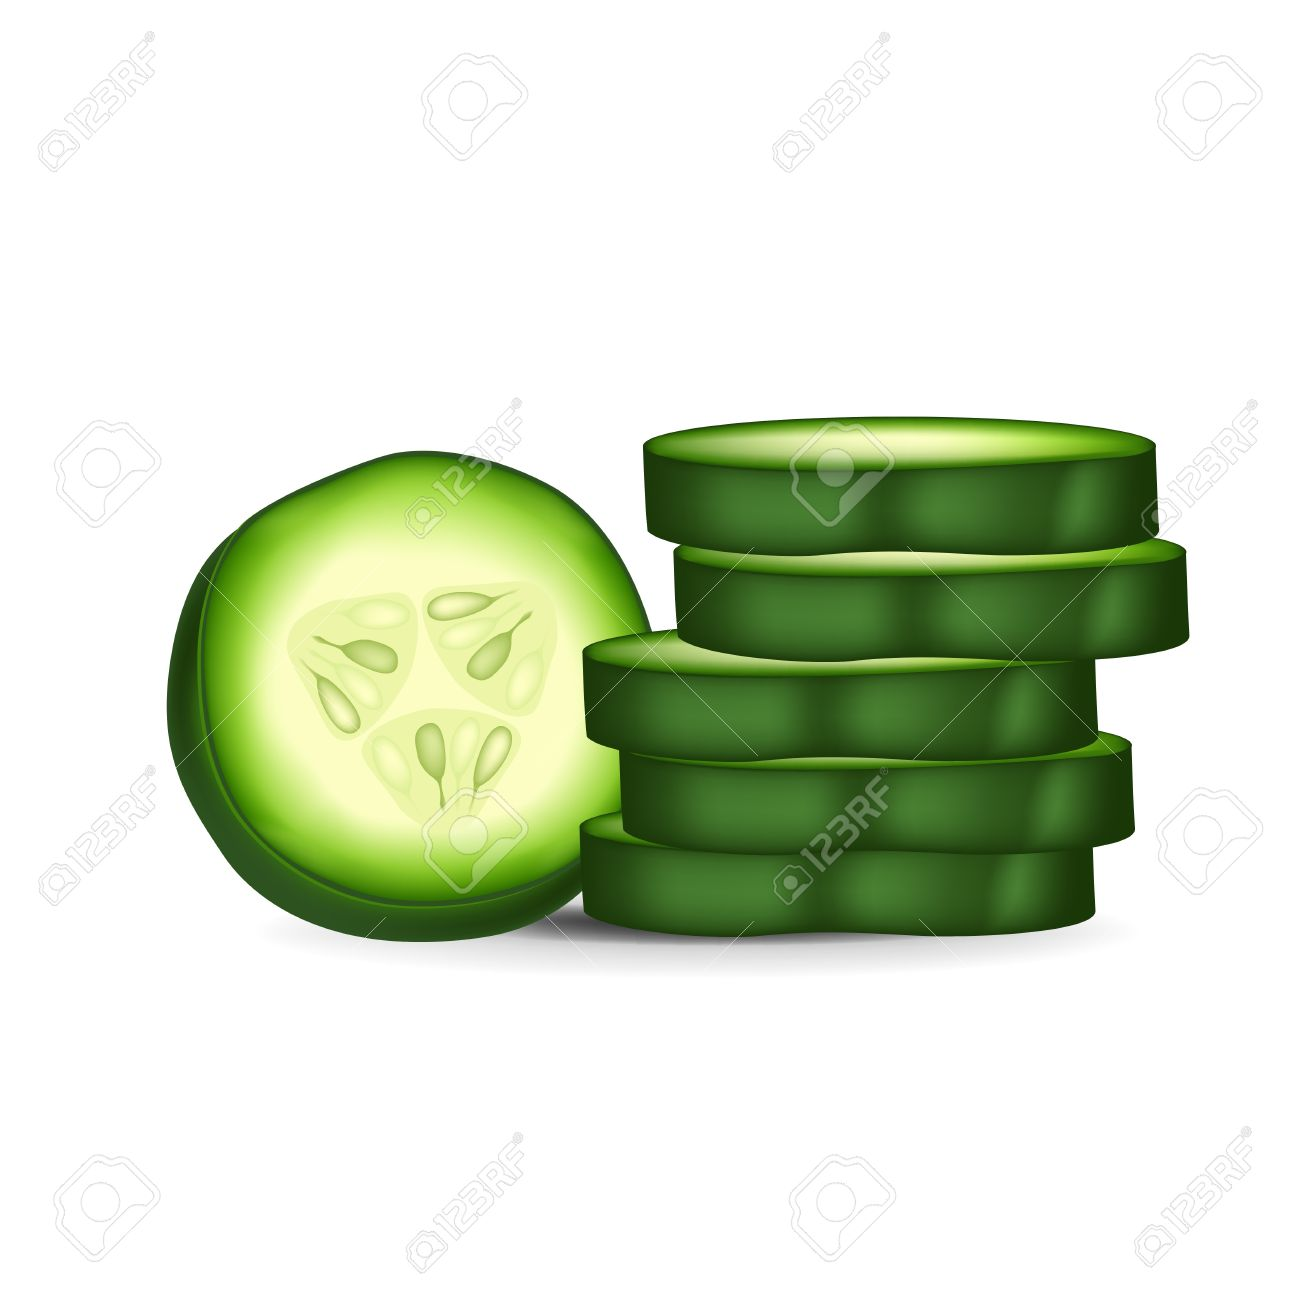 Cucumber slices clipart 20 free